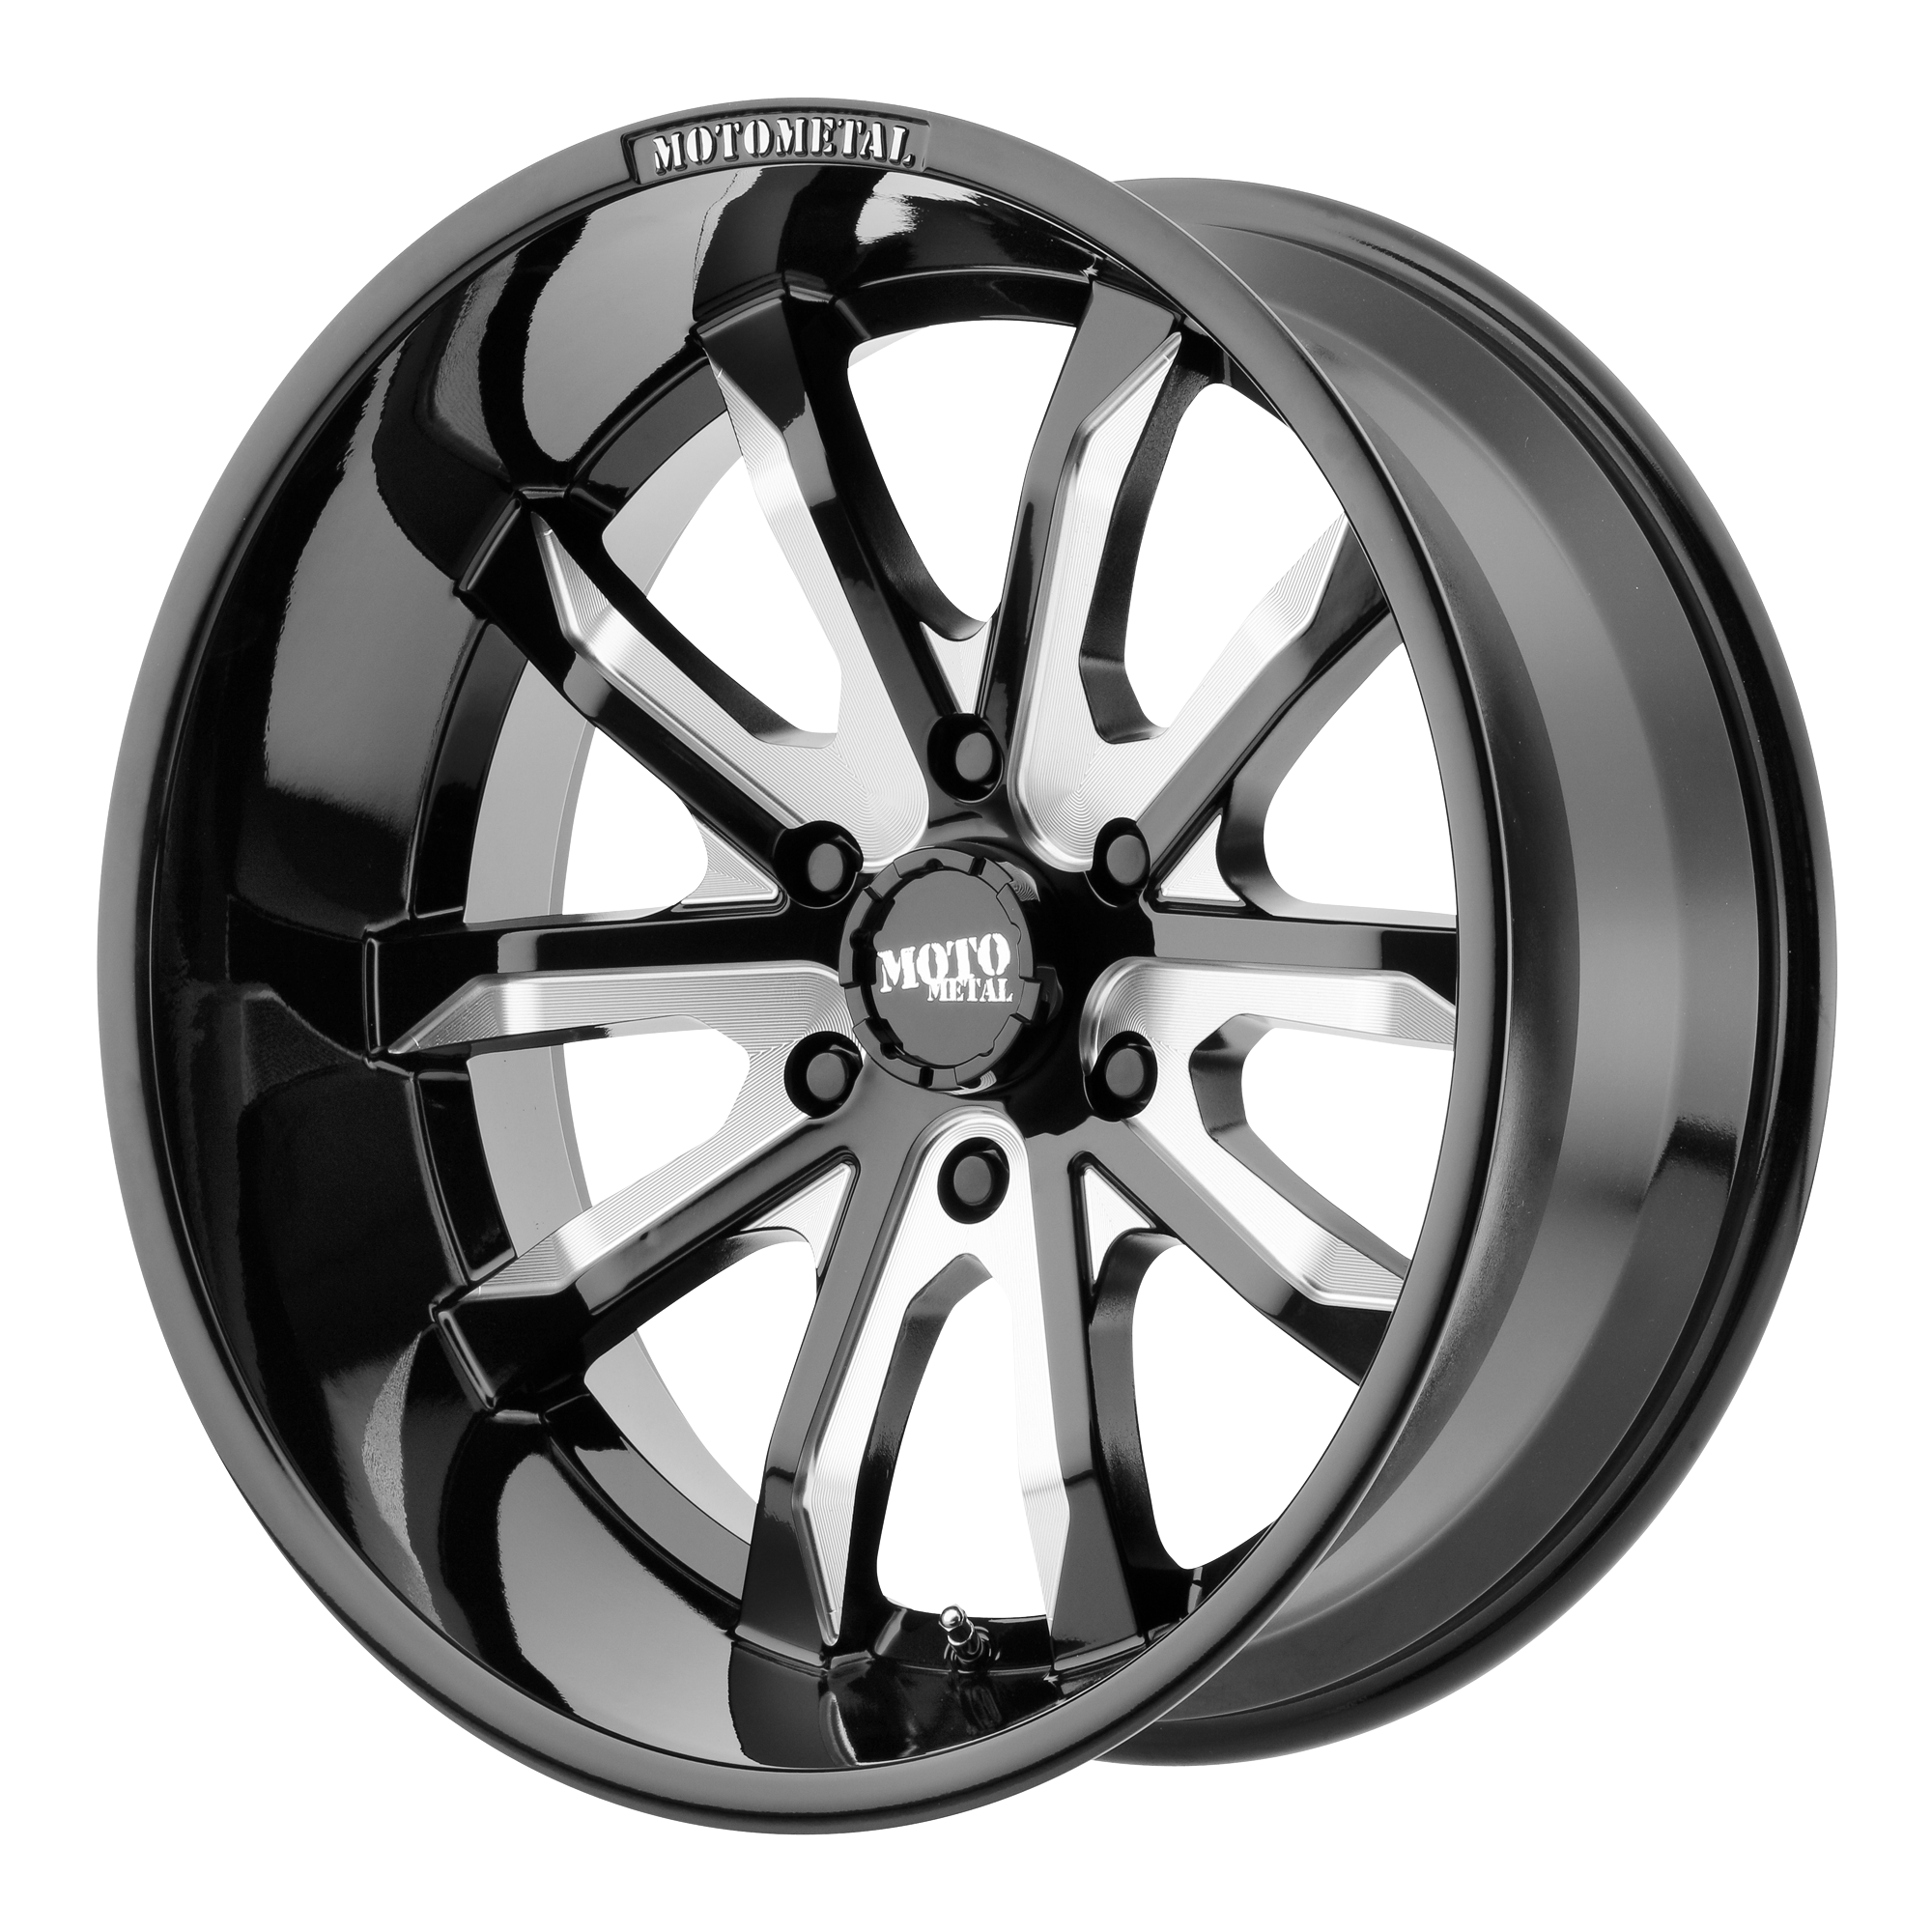 Moto Metal Offroad Wheels DAGGER Gloss Black Milled